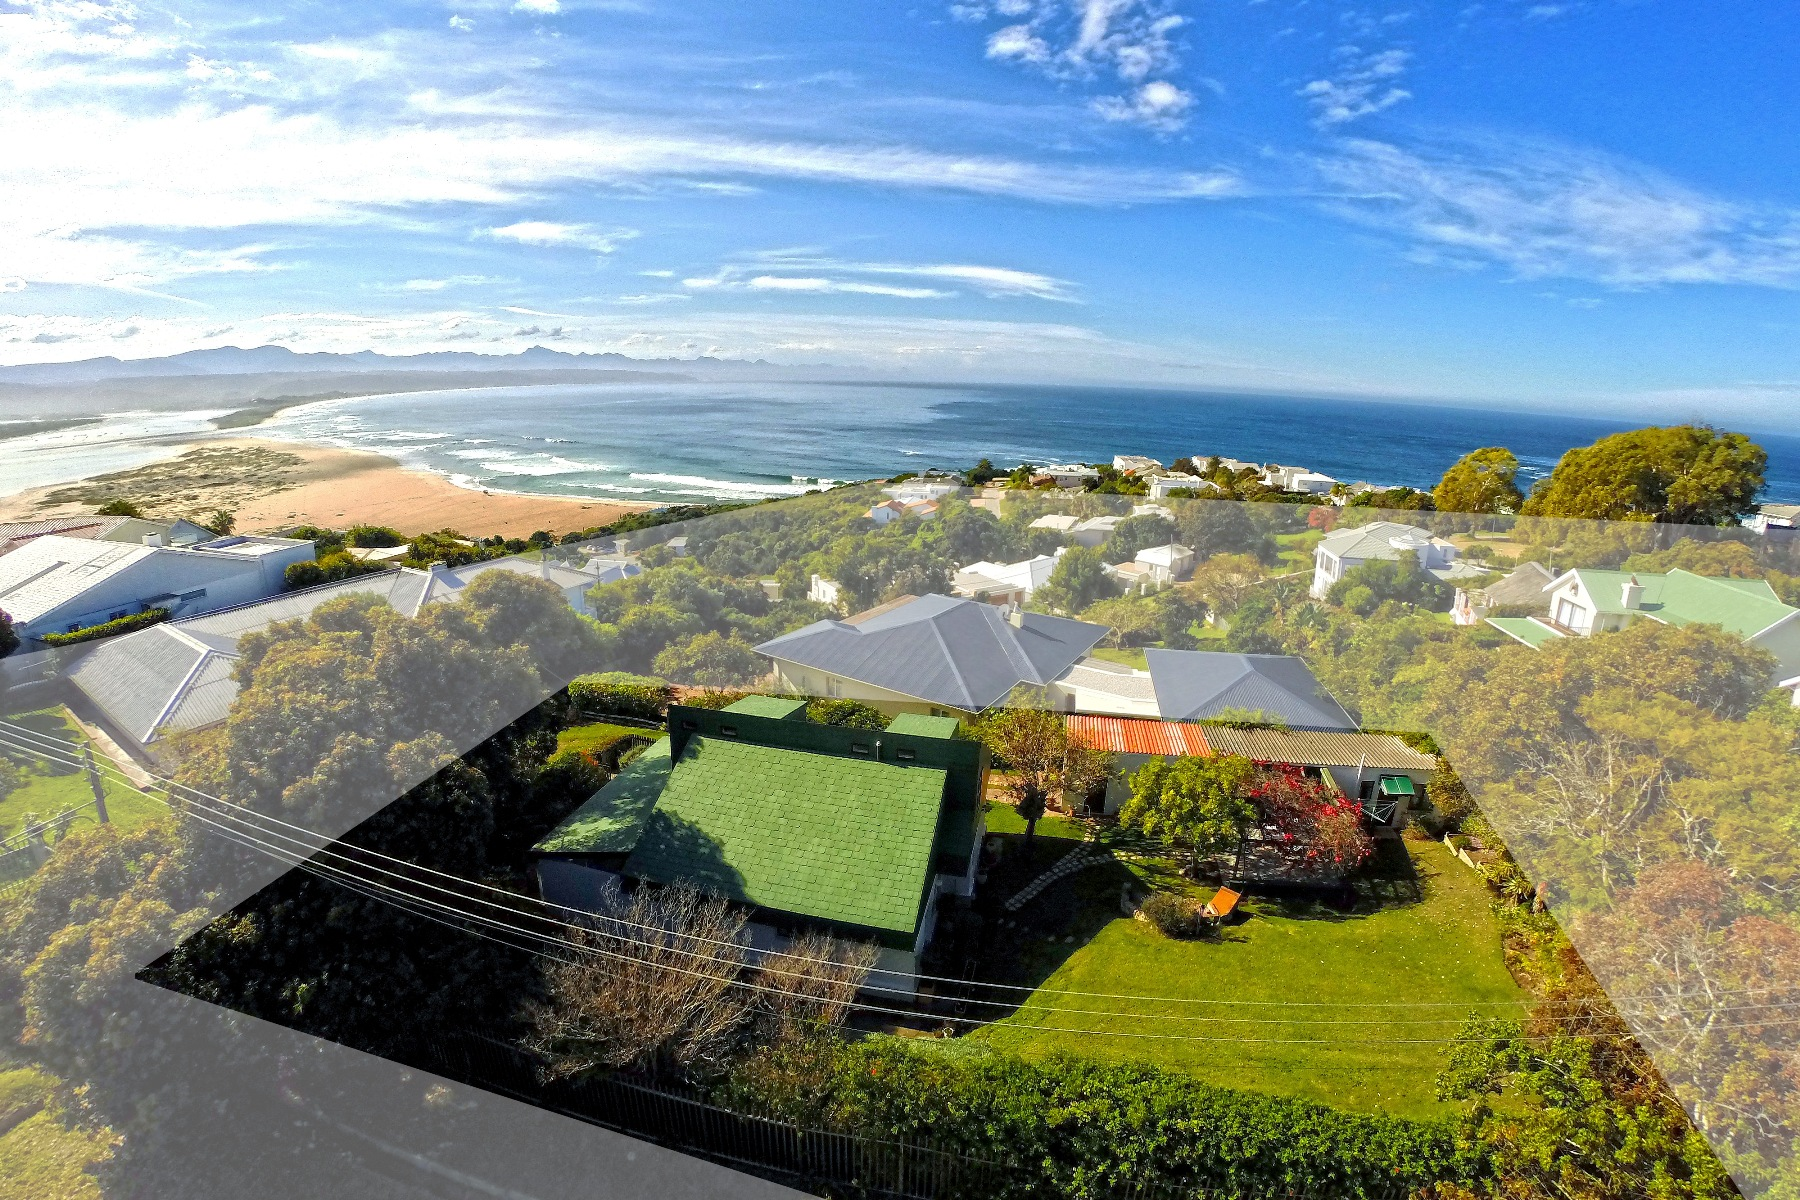 Single Family Home for Sale at The Pearl of Plett Plettenberg Bay, Western Cape 6600 South Africa